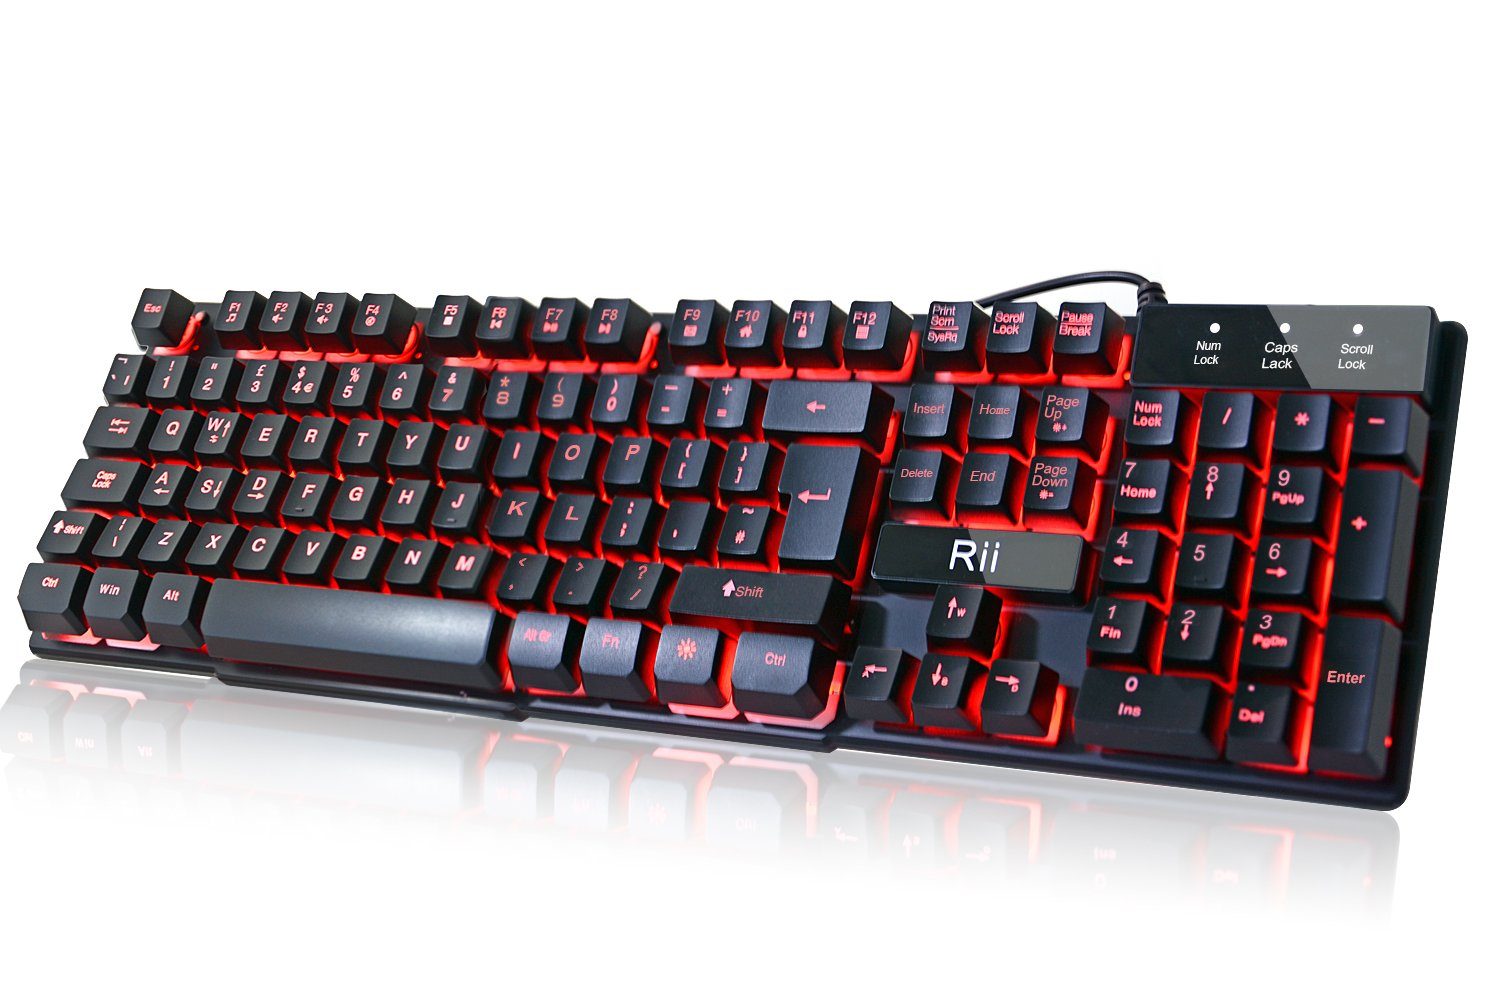 Best Gaming Keyboards 2020.Top 10 Best Programmable Gaming Keyboard Reviews 2018 2020